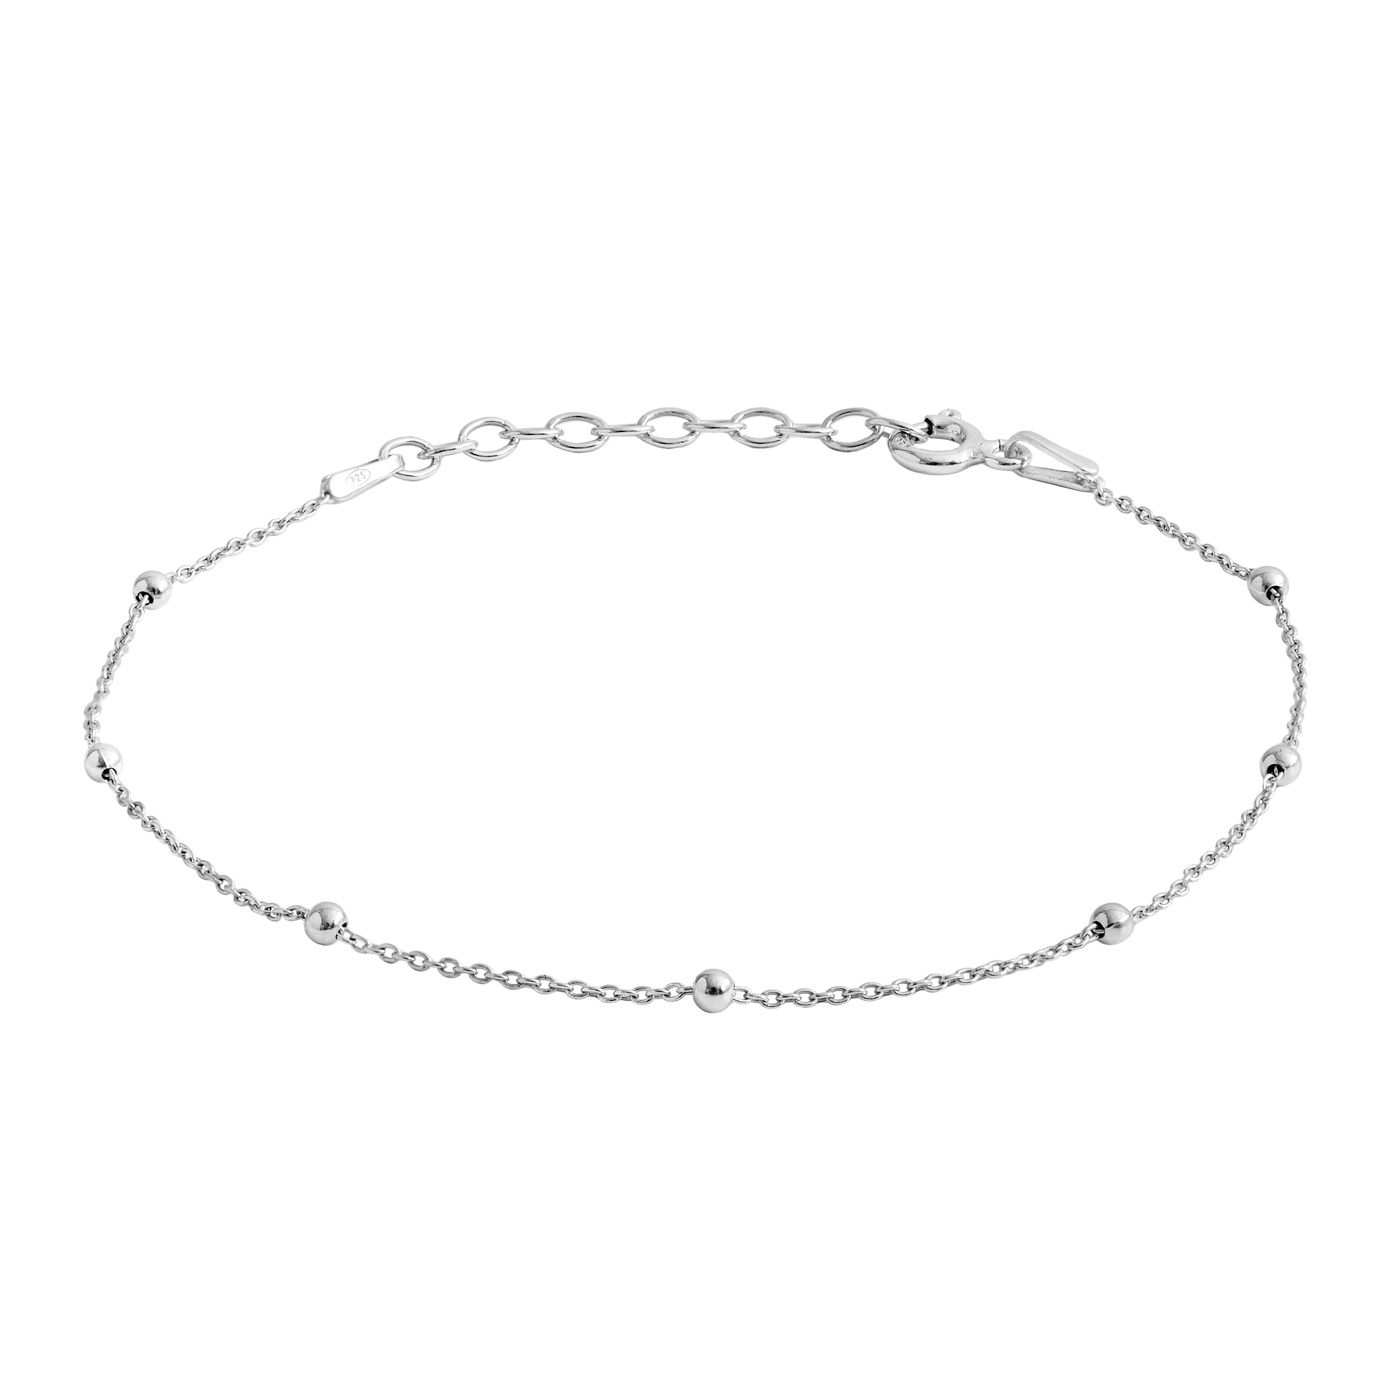 Selected Jewels 925 sterling silver bracelet worth €39,95